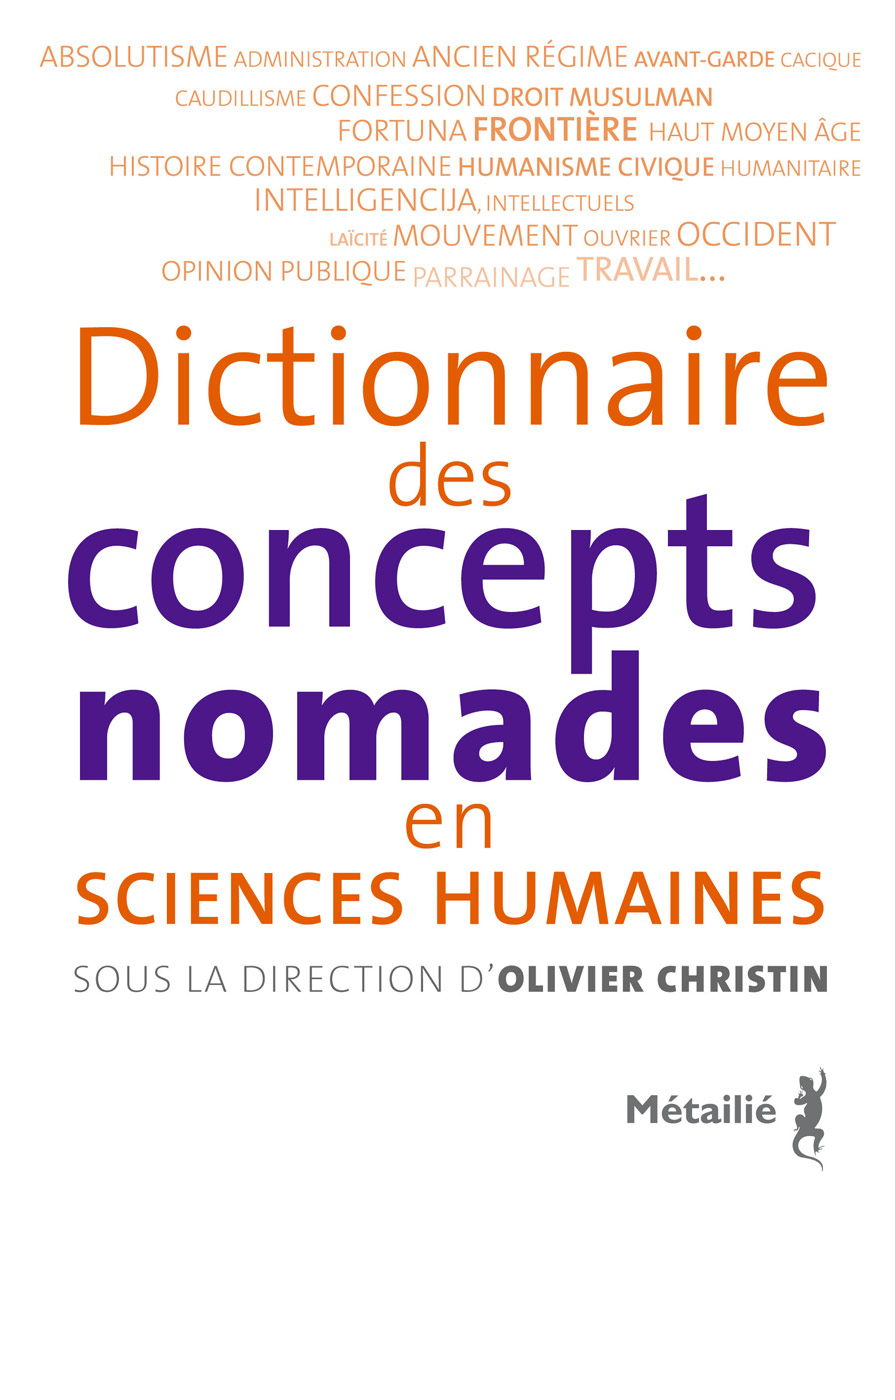 https://editions-metailie.com/wp-content/uploads/couvHDjpg/dictionnaire%20des%20concepts%20nomades%20en%20sciences%20humaines.jpg